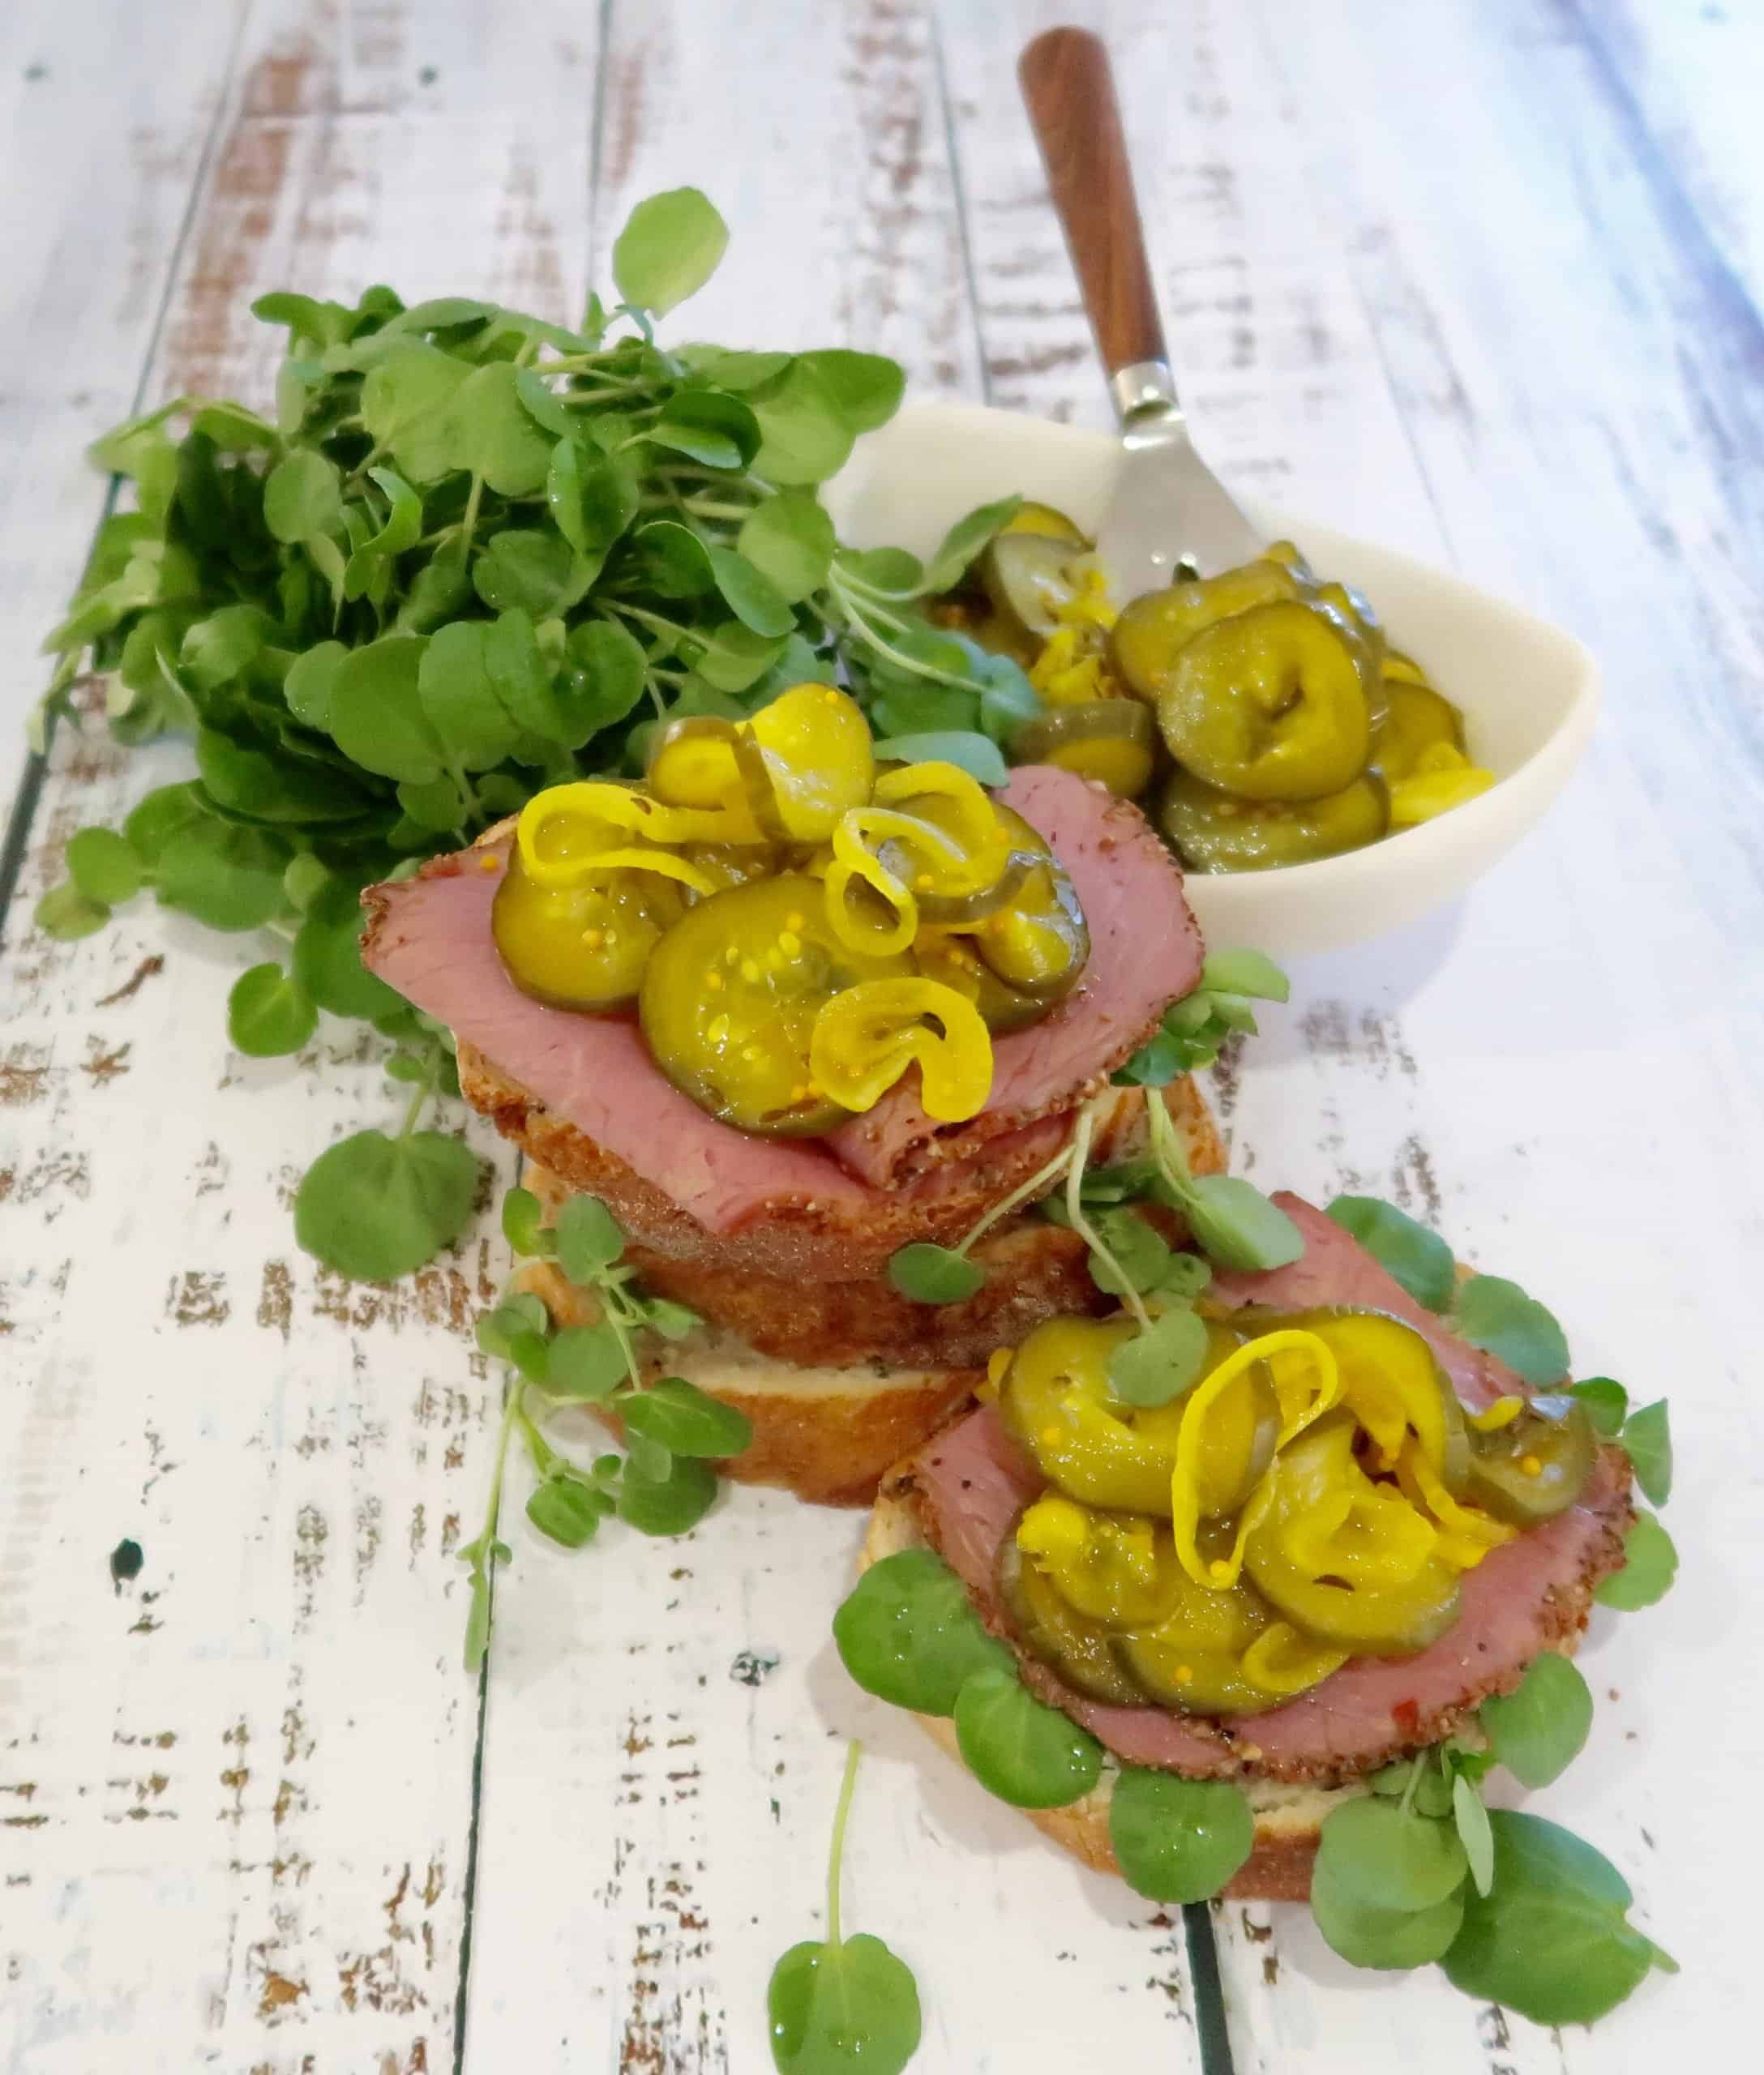 easy bread and butter cucumber pickle served on pastrami and bread with watercress